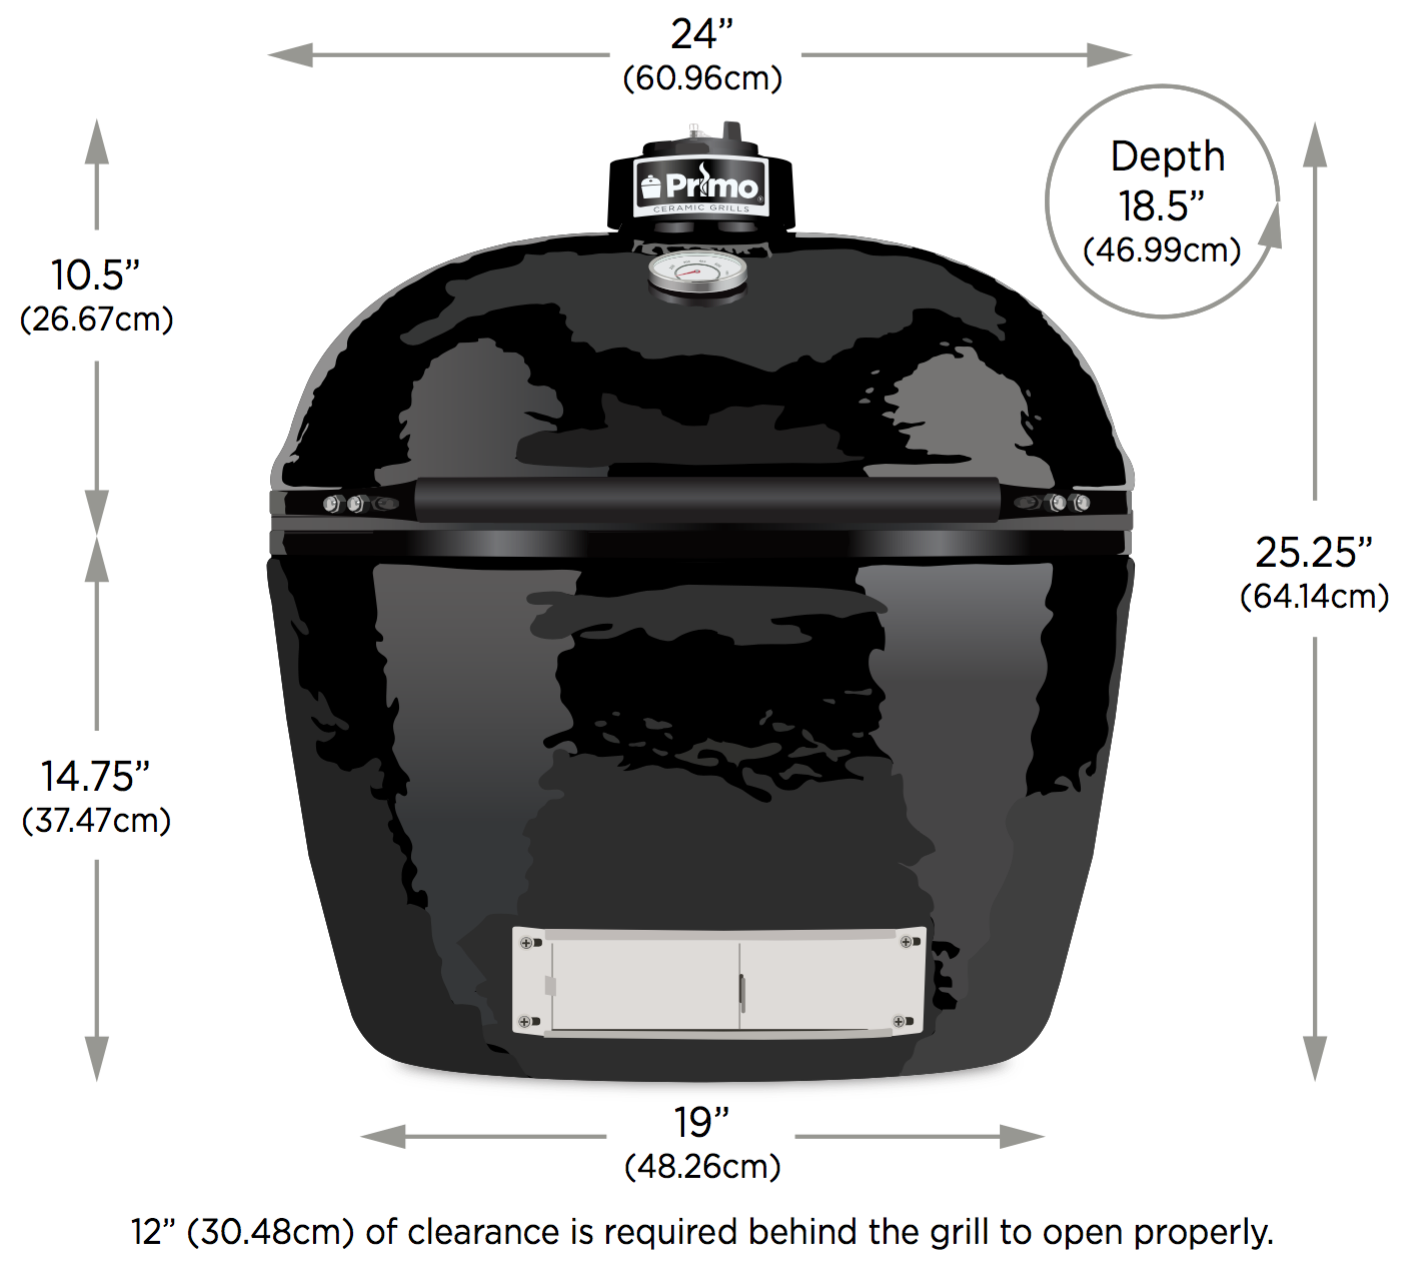 spec sheet for primo large oval smoker